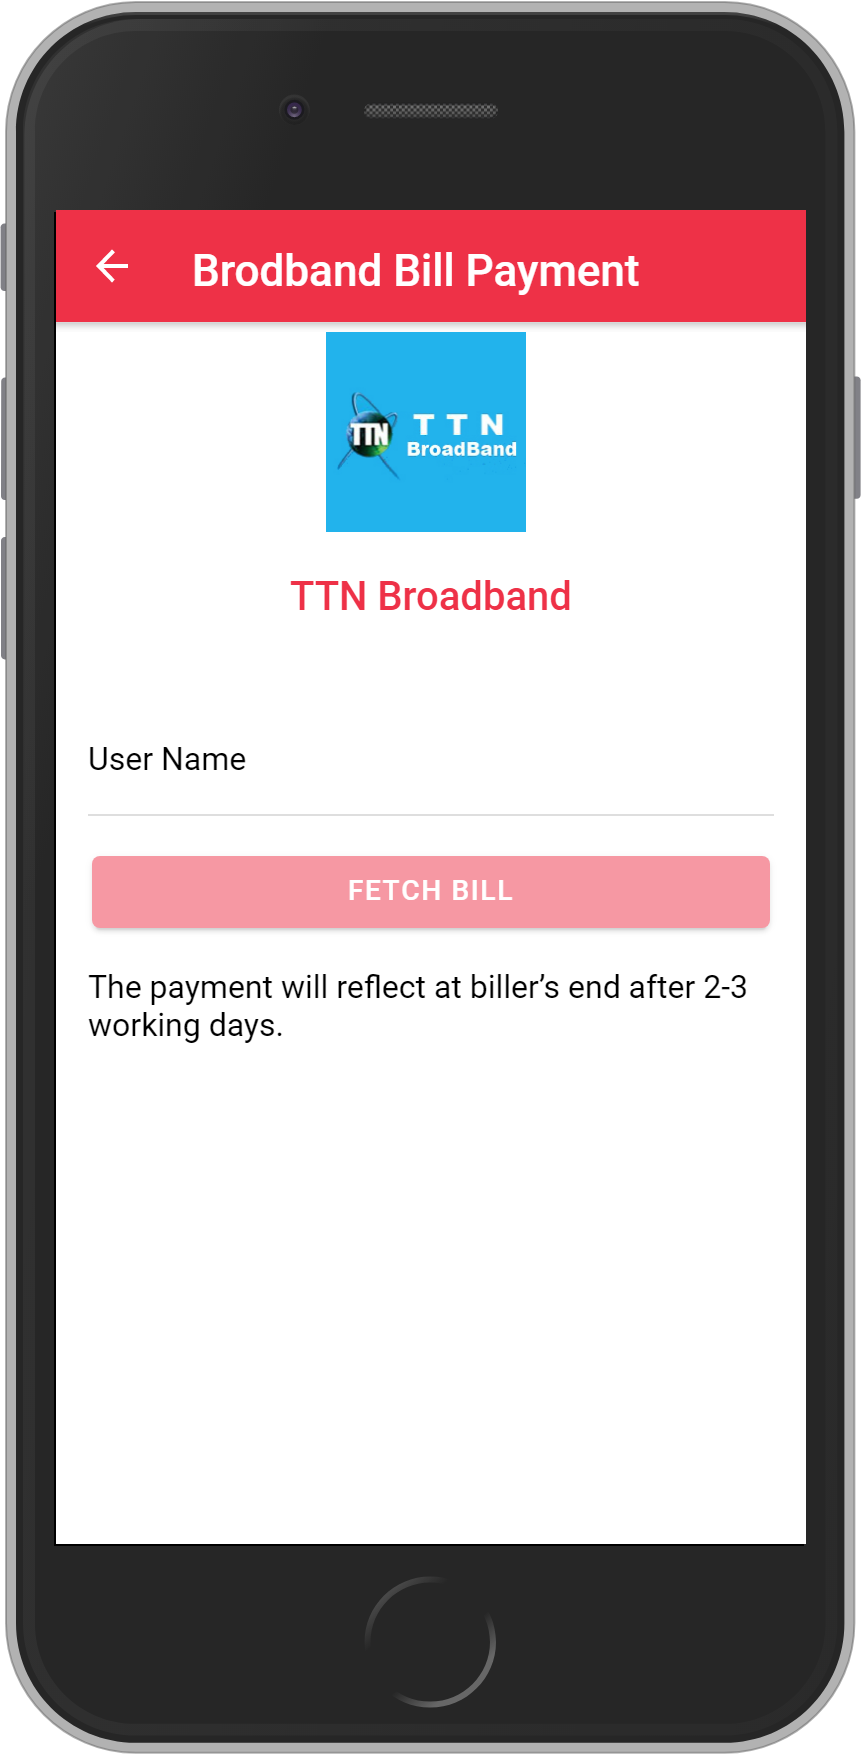 Get UNLIMITED <b>0.1%</b> CASHBACK on TTN Broadband Bill Payment.